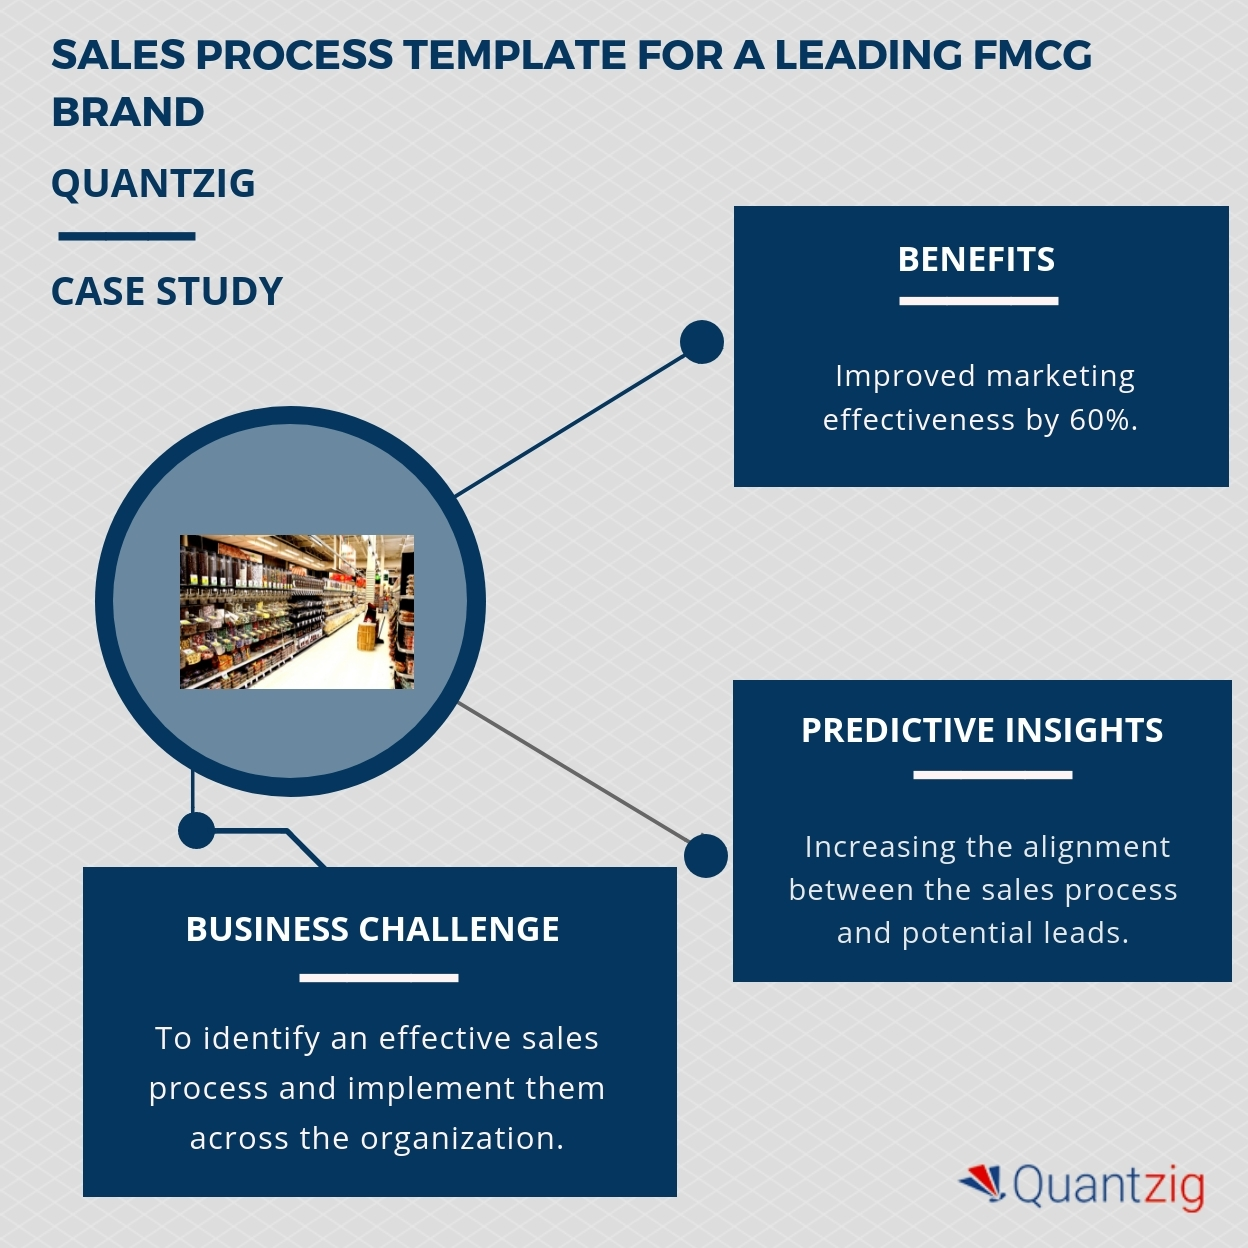 What Is The Best Way To Increase Sales For Fmcg Brands A Study By